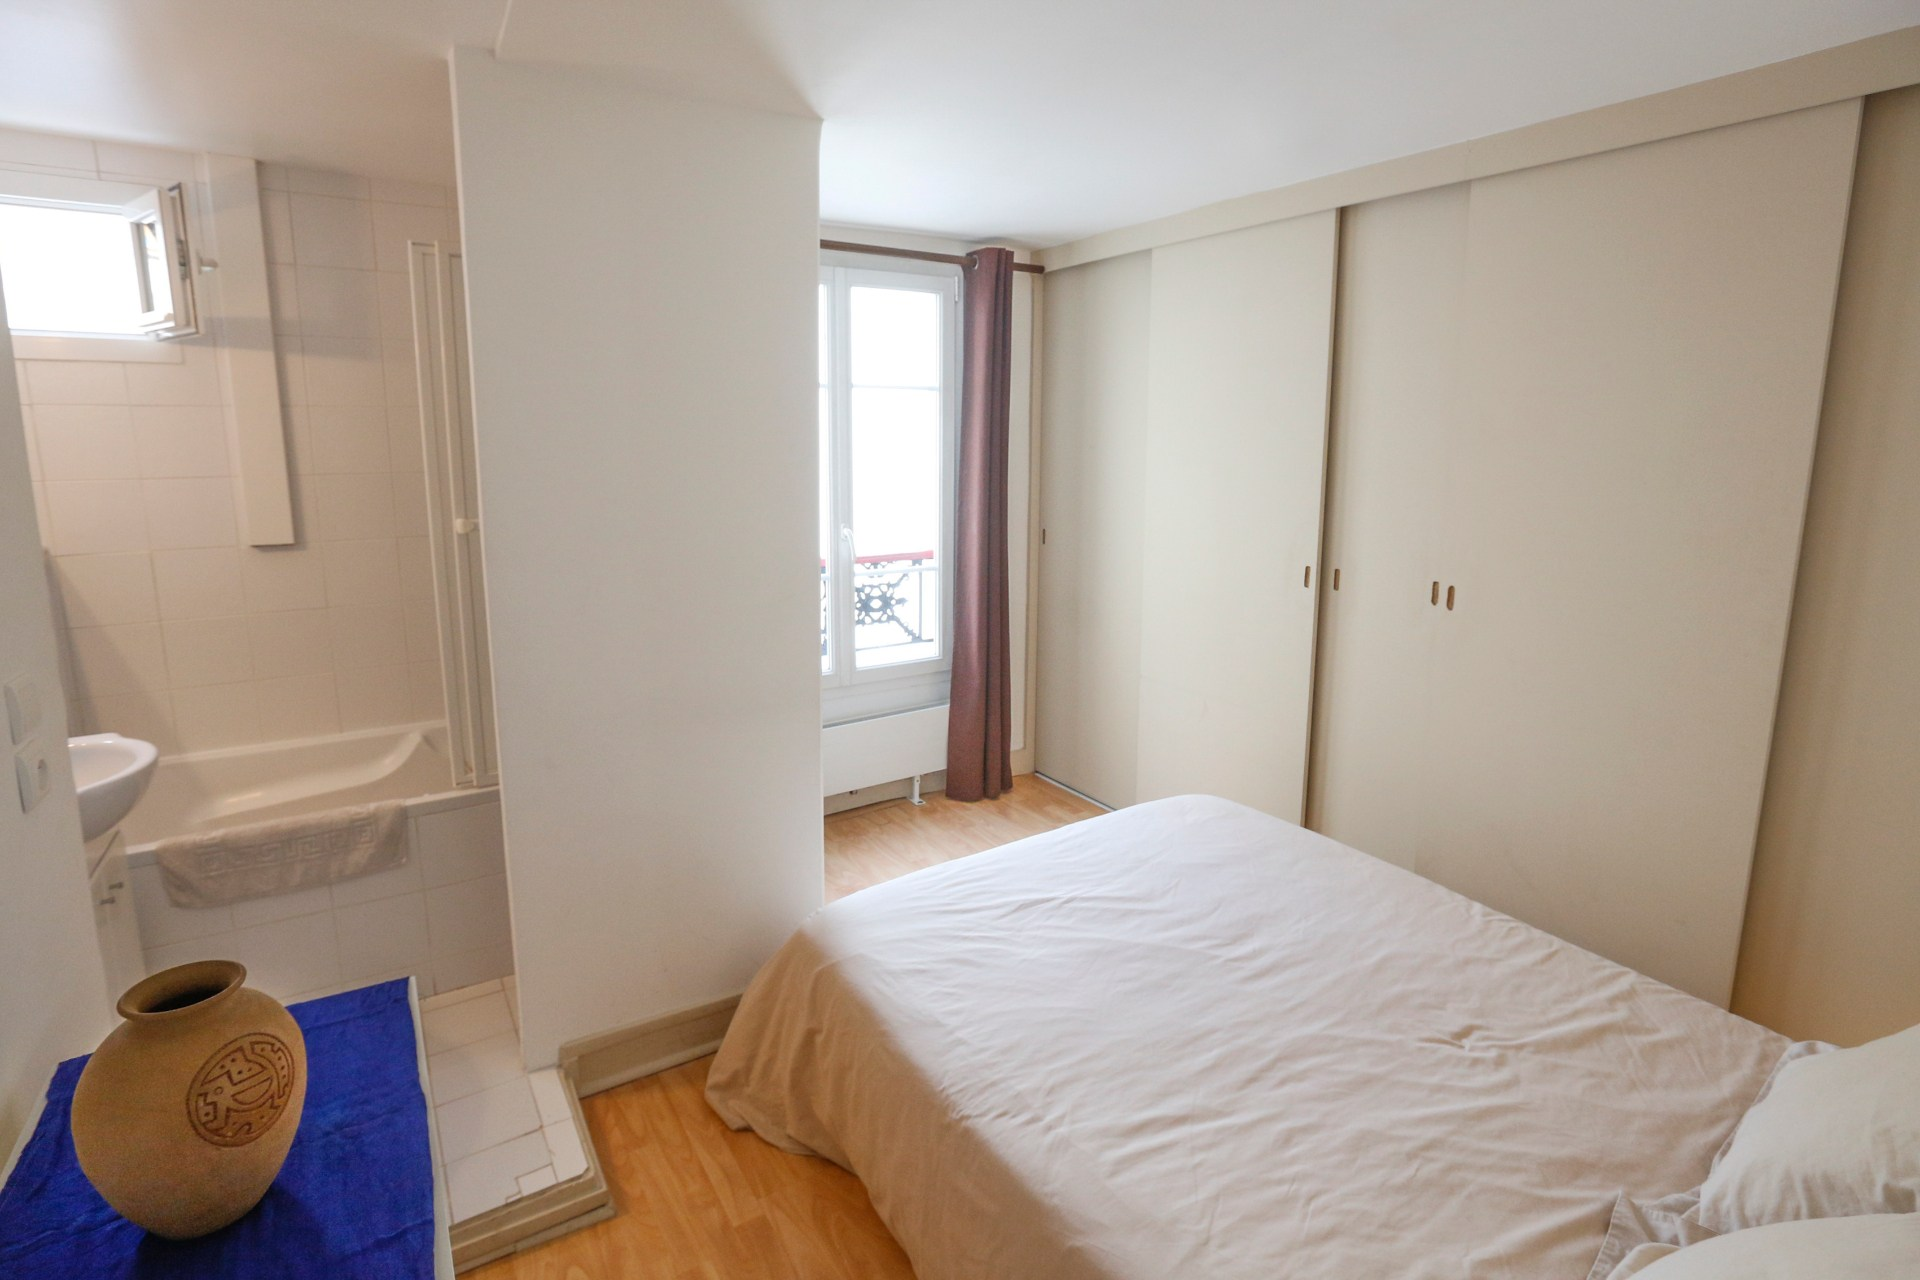 Charmant appartement en plein coeur des Abbesses 6